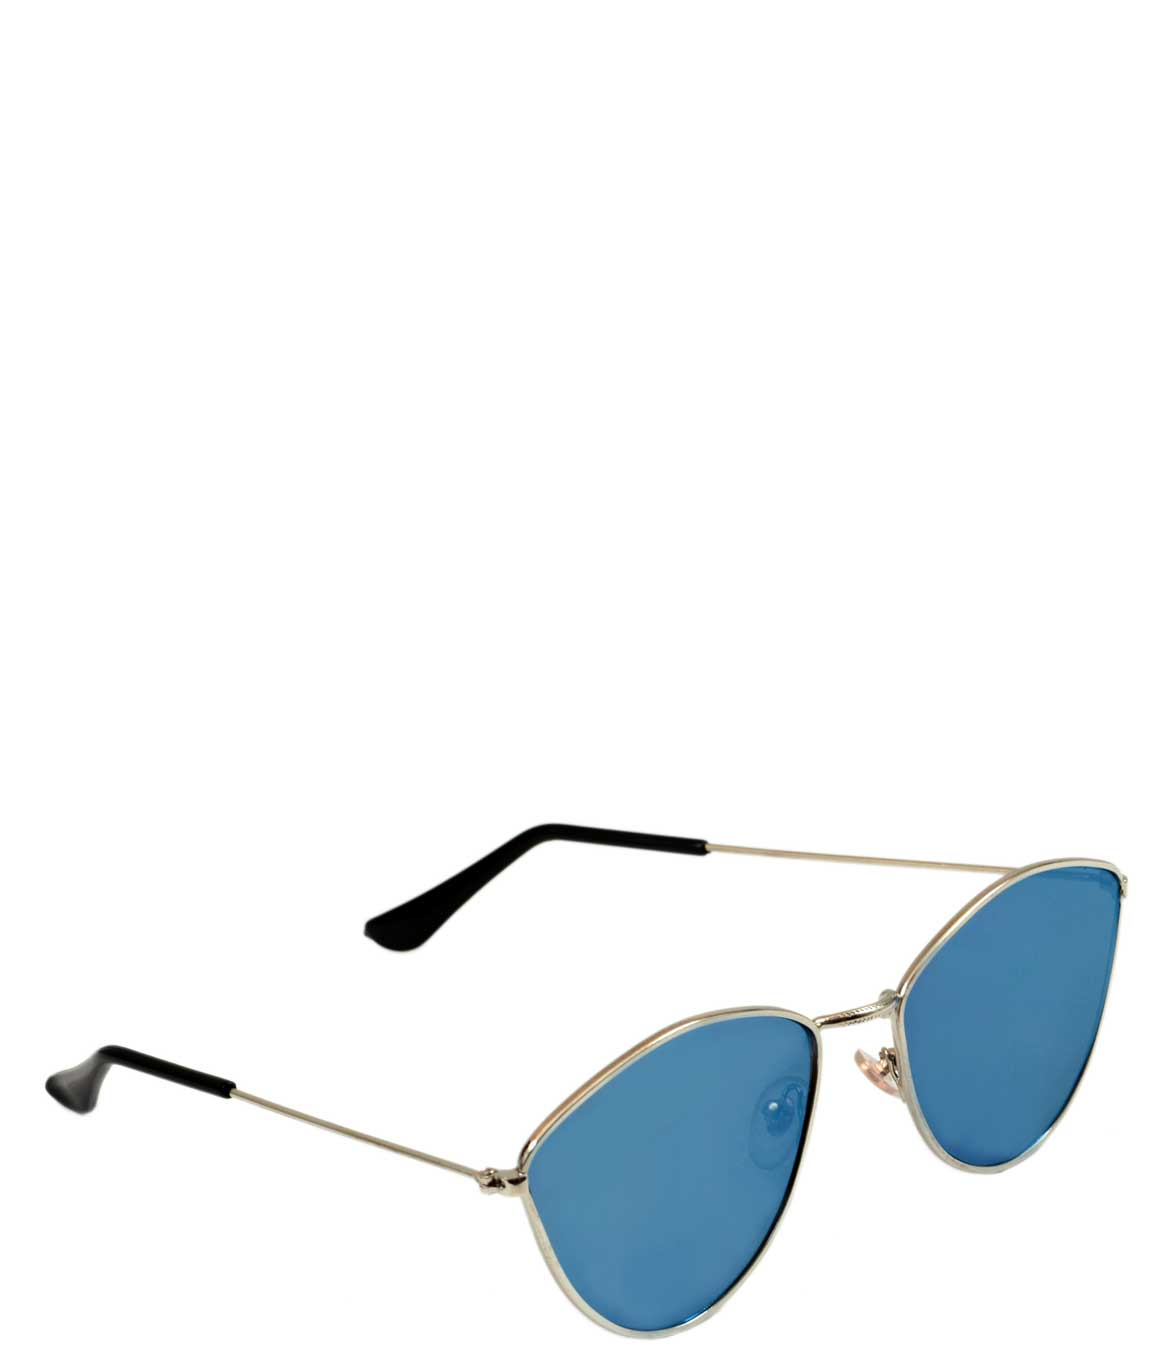 DARK BLUE OVAL SUNGLASSES